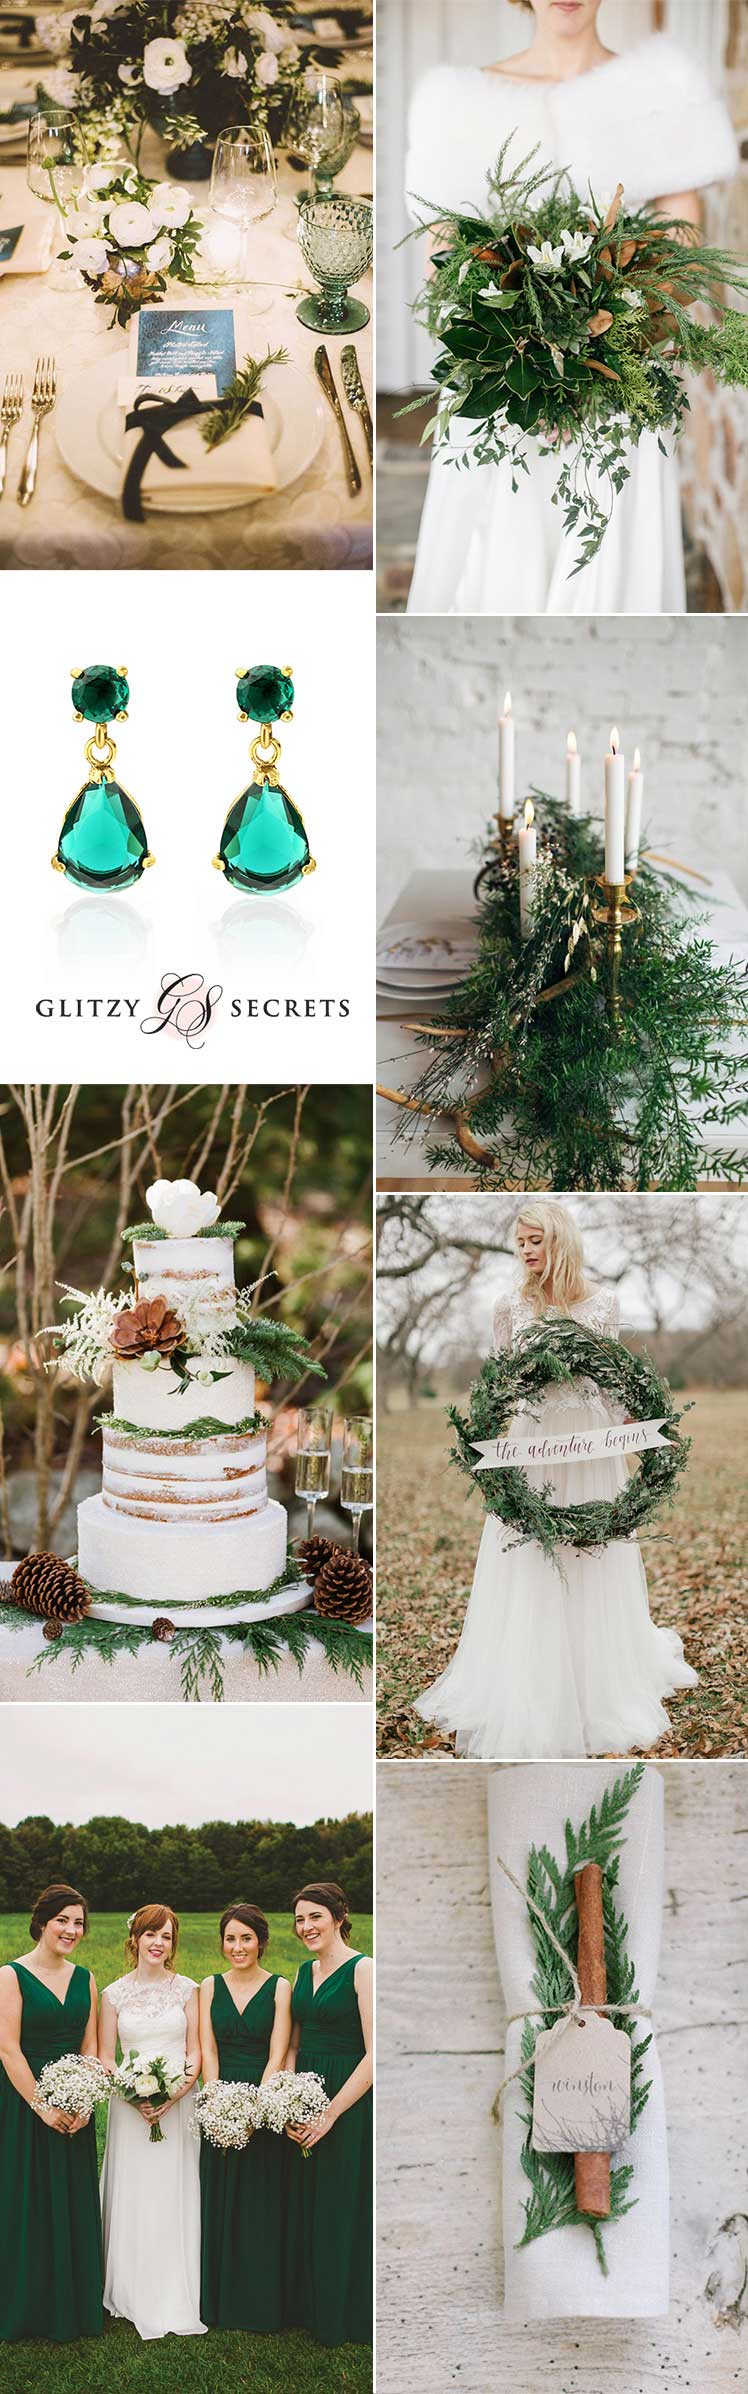 pretty wedding ideas for a white and green winter wedding